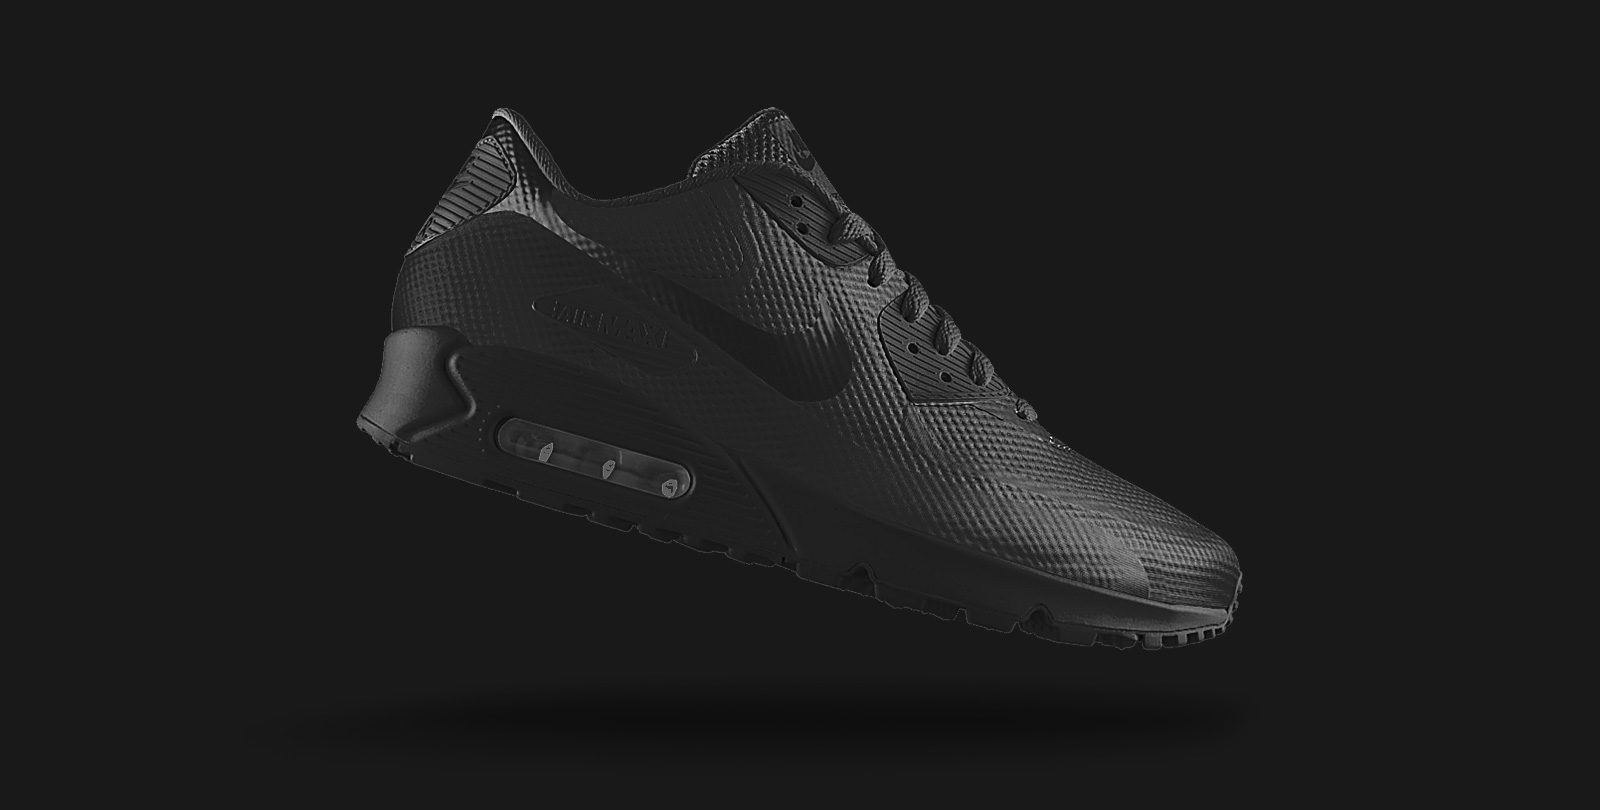 Nike Air Max 90 Hyperfuse iD Black